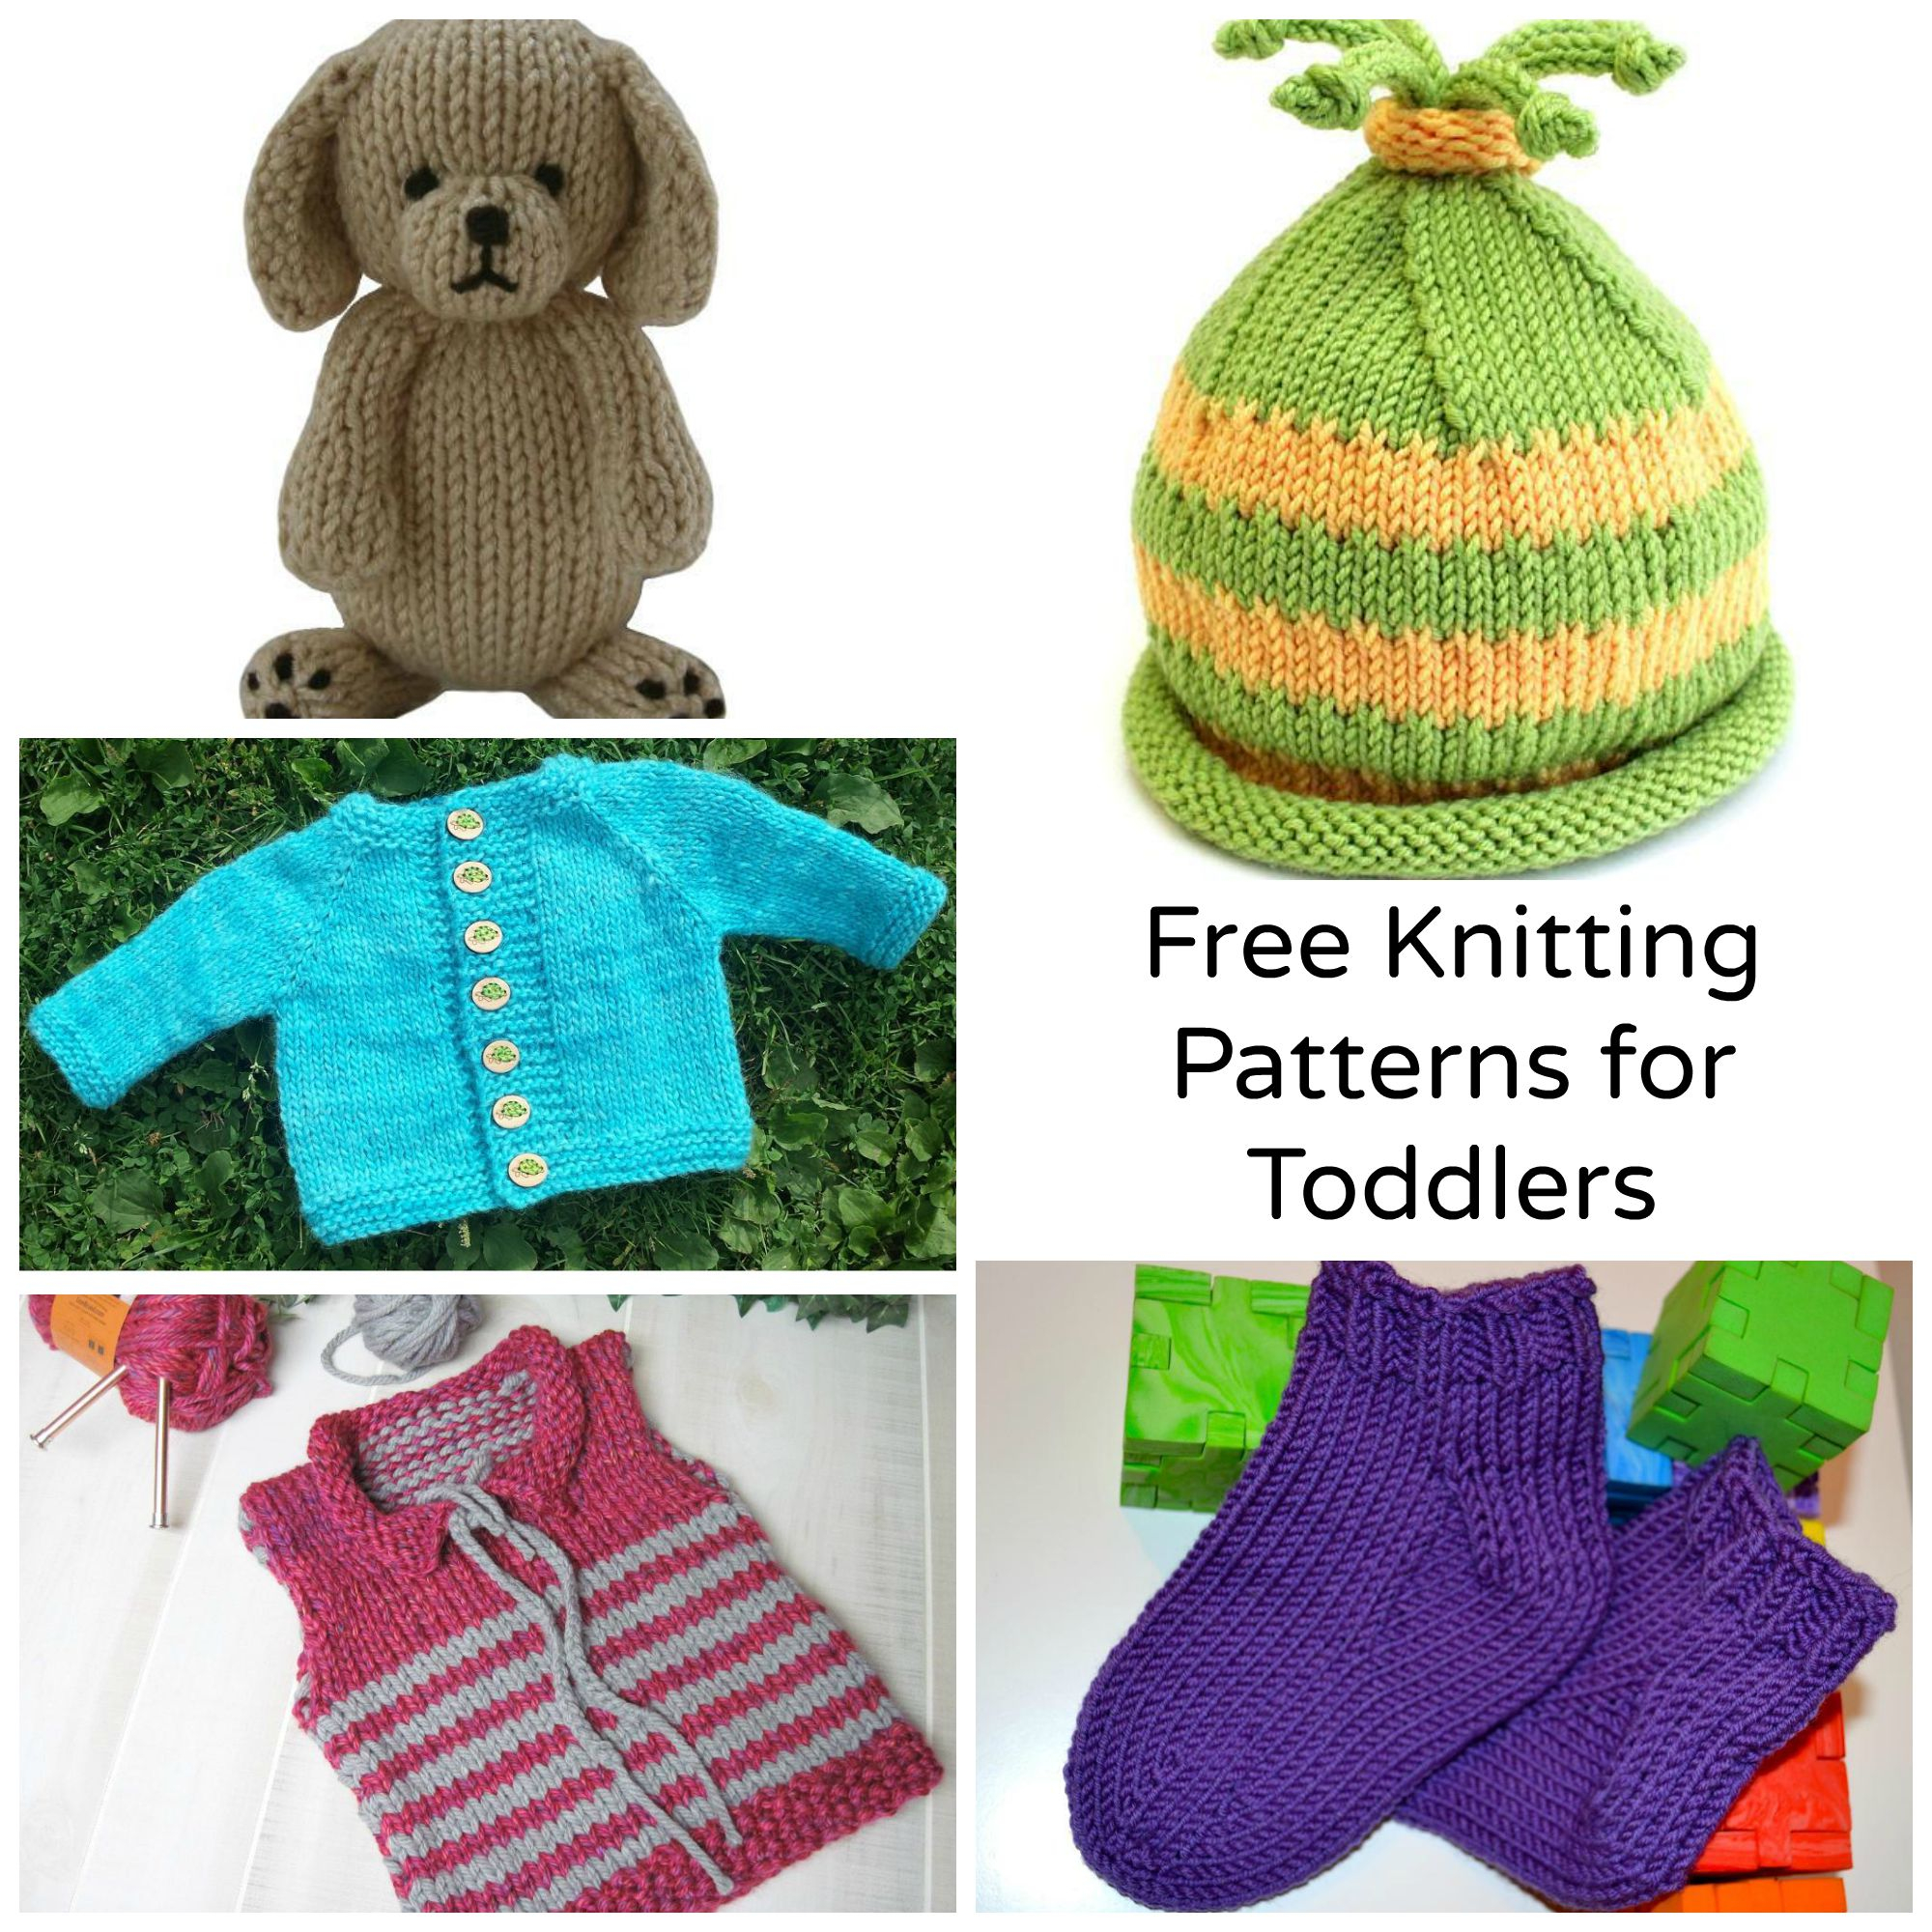 Free Knitting Patterns For Boys 7 Sweet Free Knitting Patterns For Toddlers Craftsy